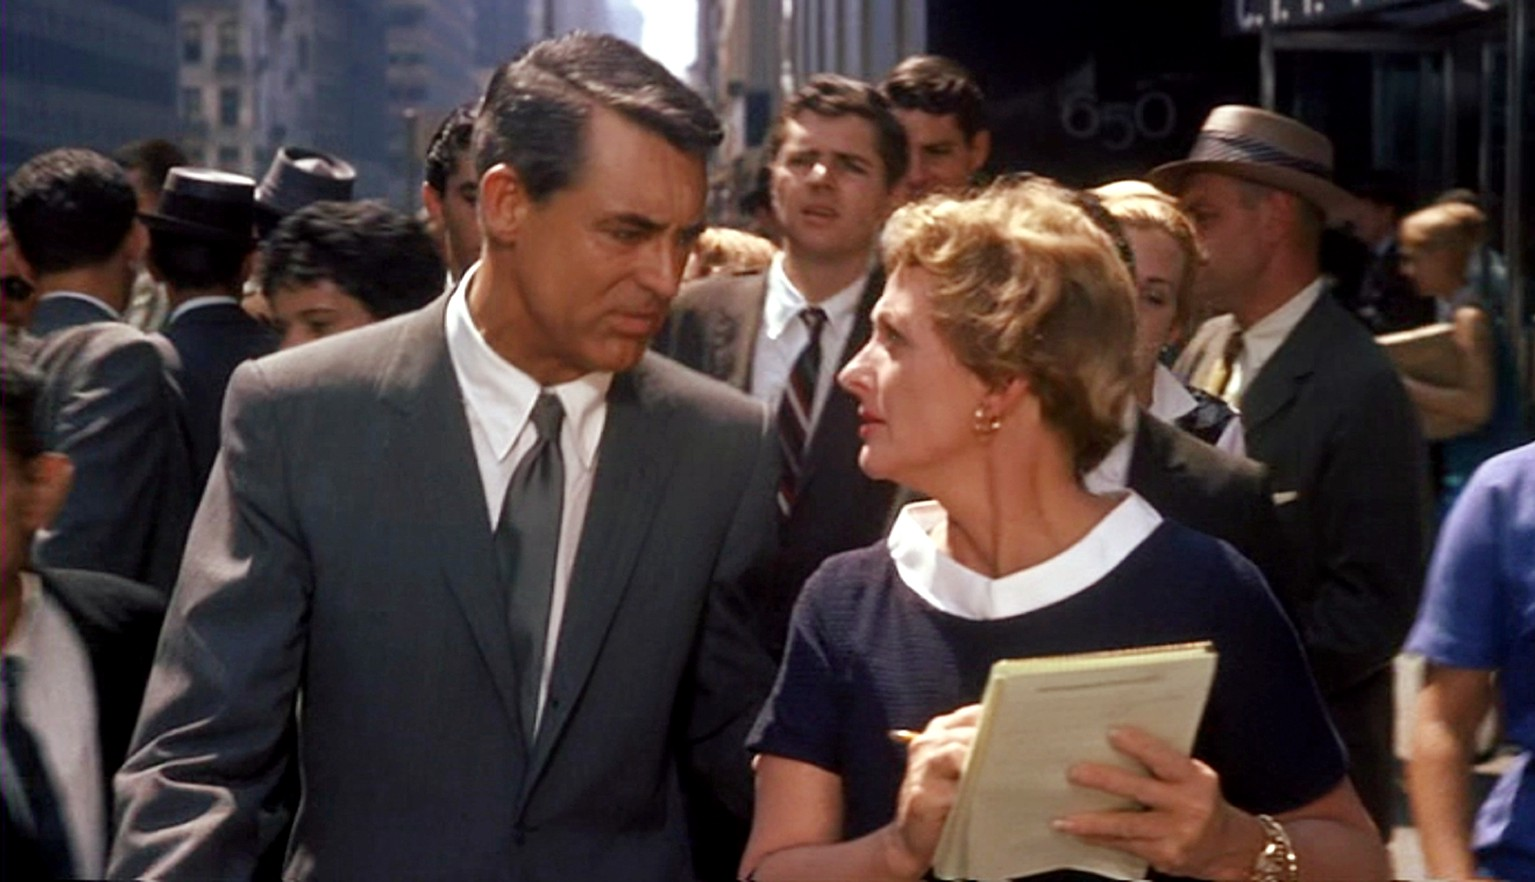 Busy Street of NewYork in North By Northwest